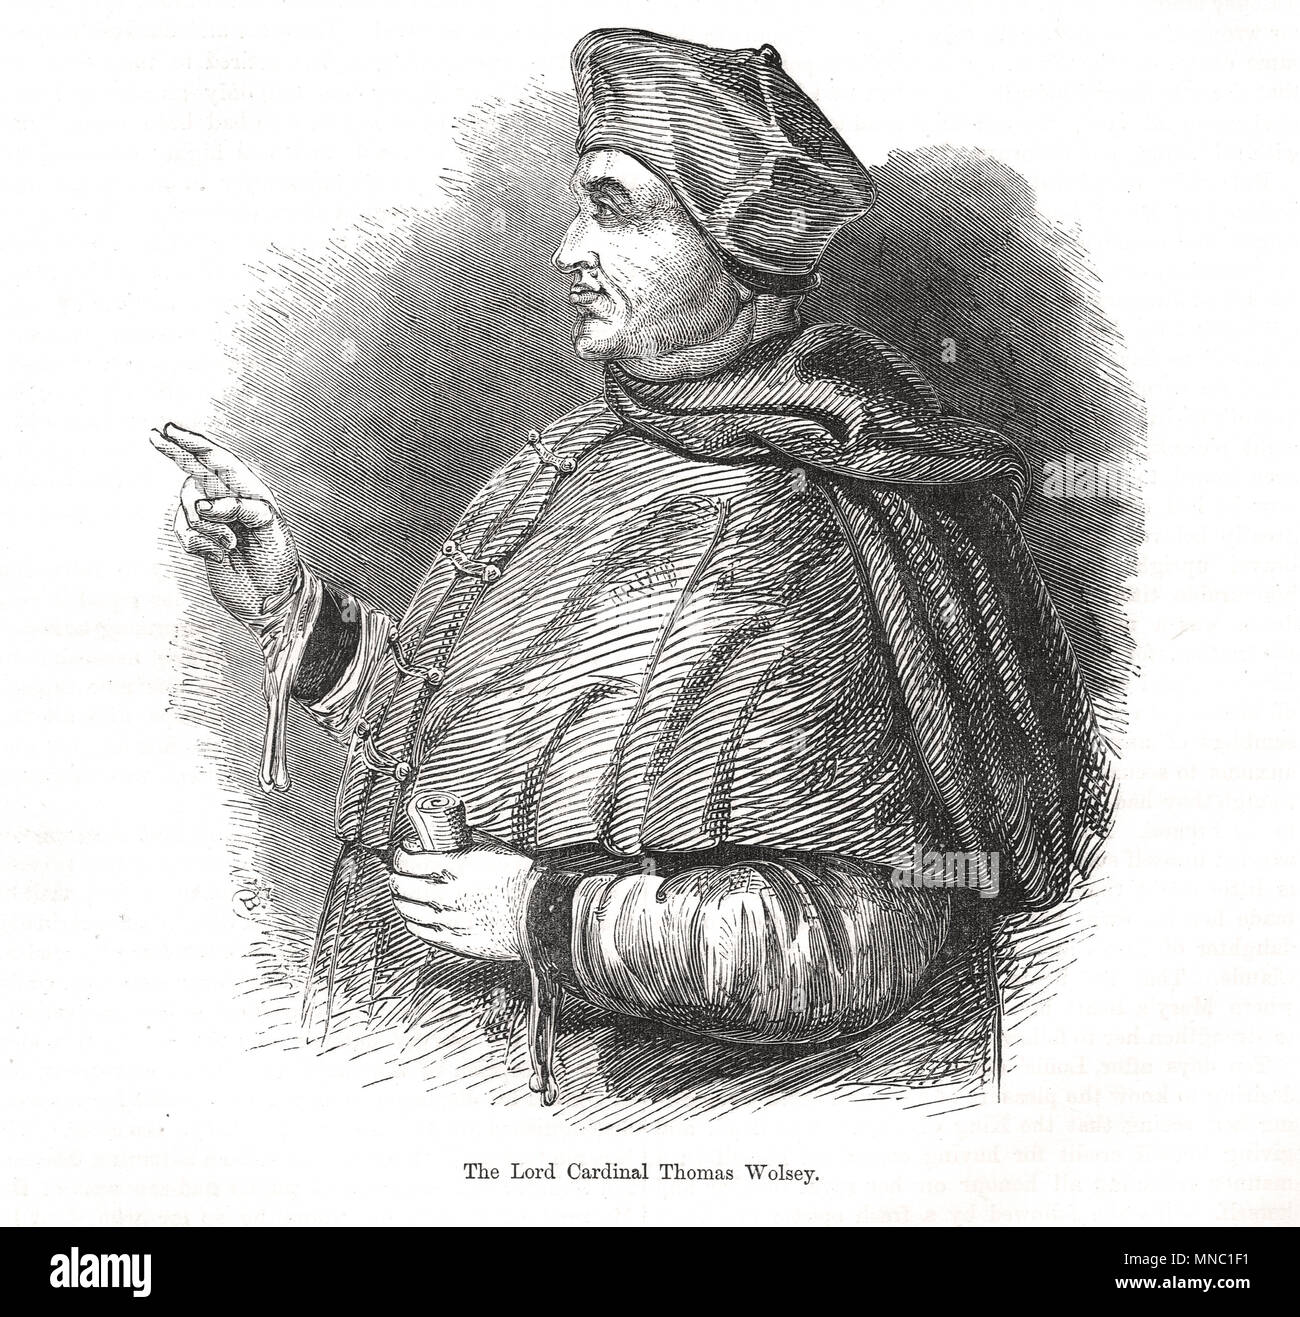 Thomas Wolsey, Lord Cardinal, giving a blessing - Stock Image